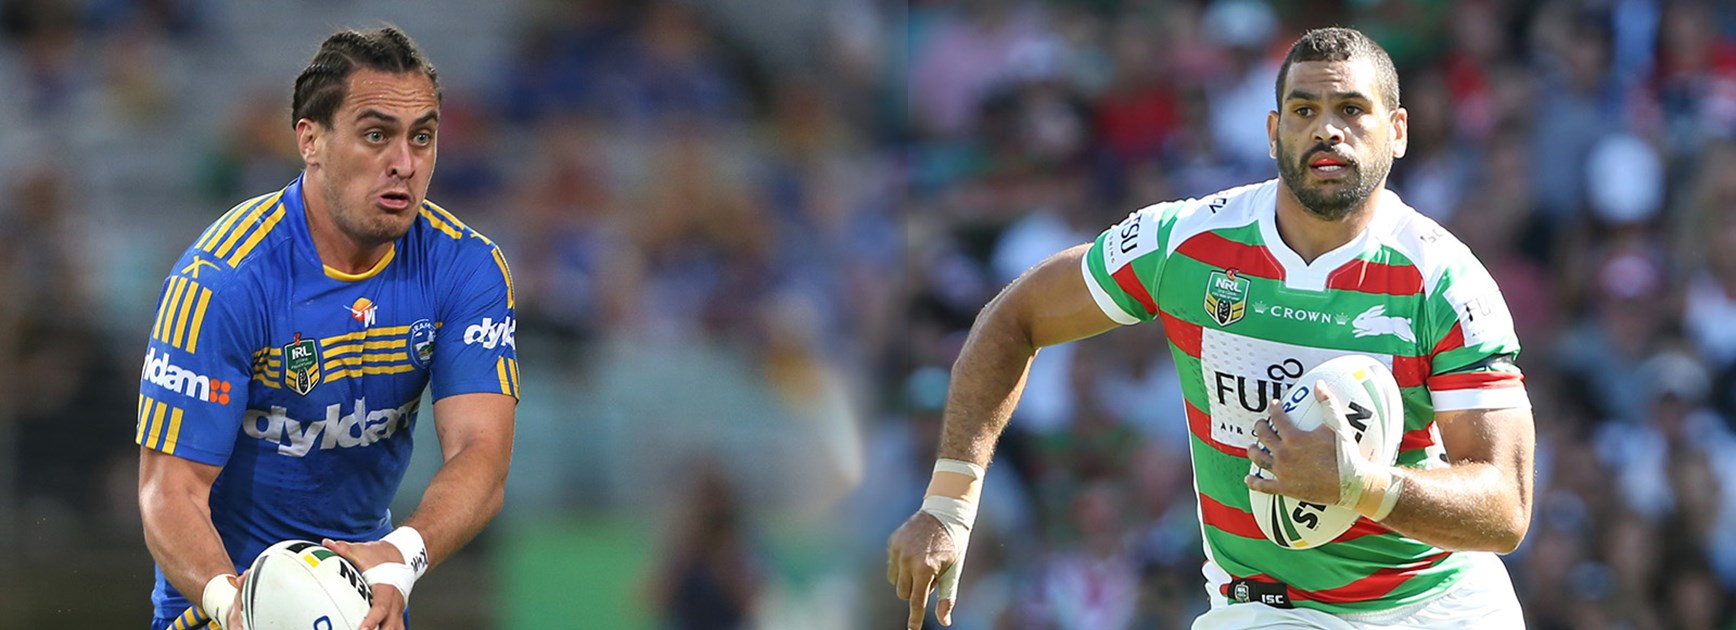 They are two of the biggest five-eighths you are ever likely to see when Brad Takairangi takes on Greg Inglis.